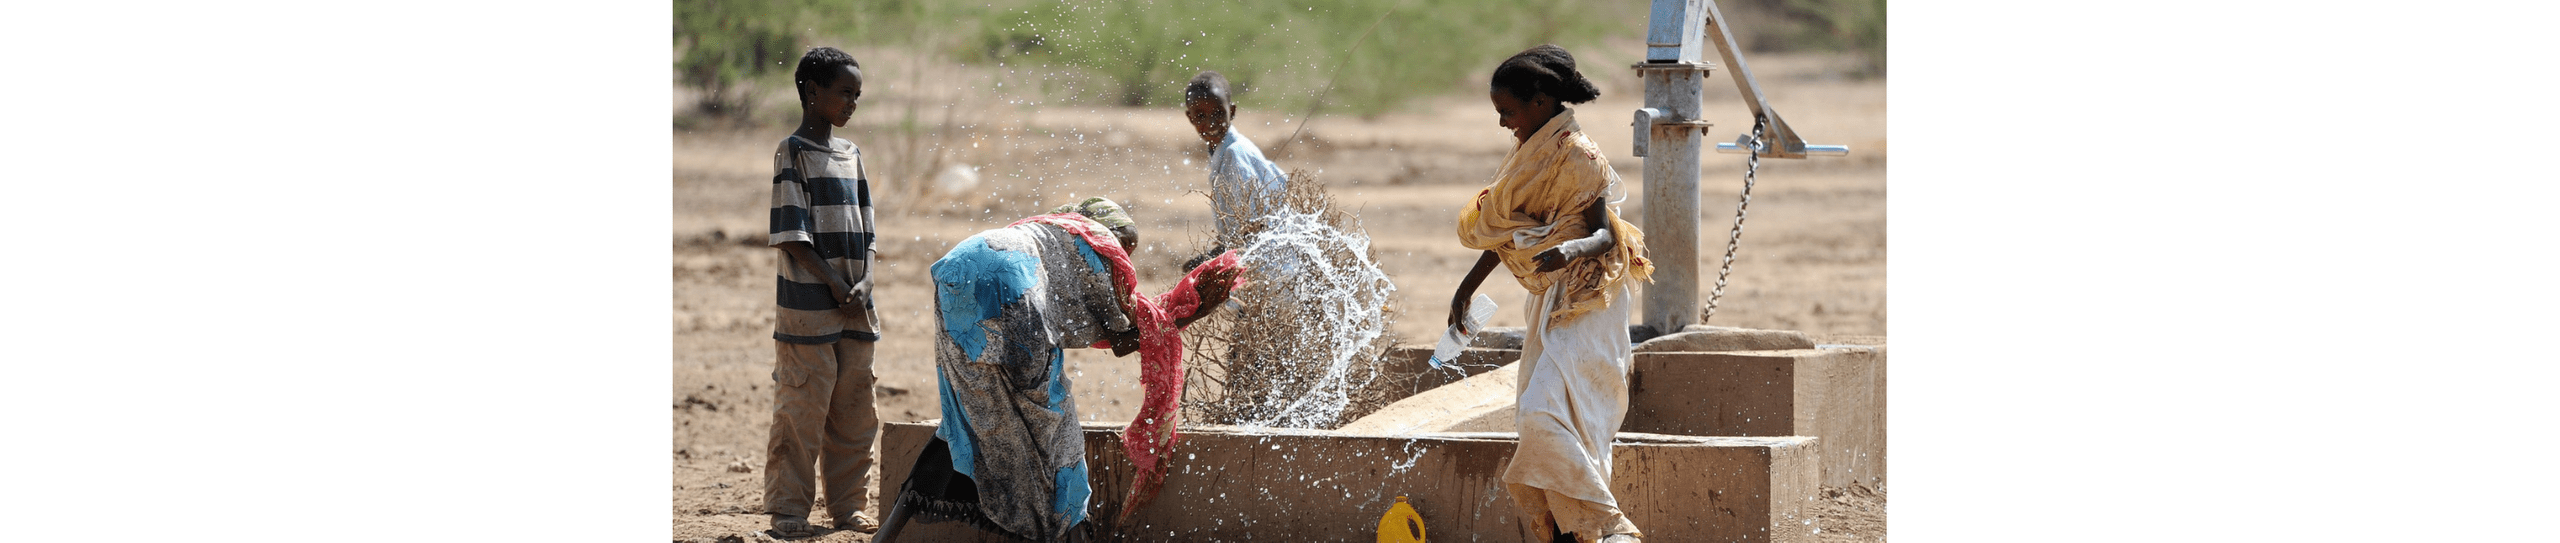 A group of African women playing with water.